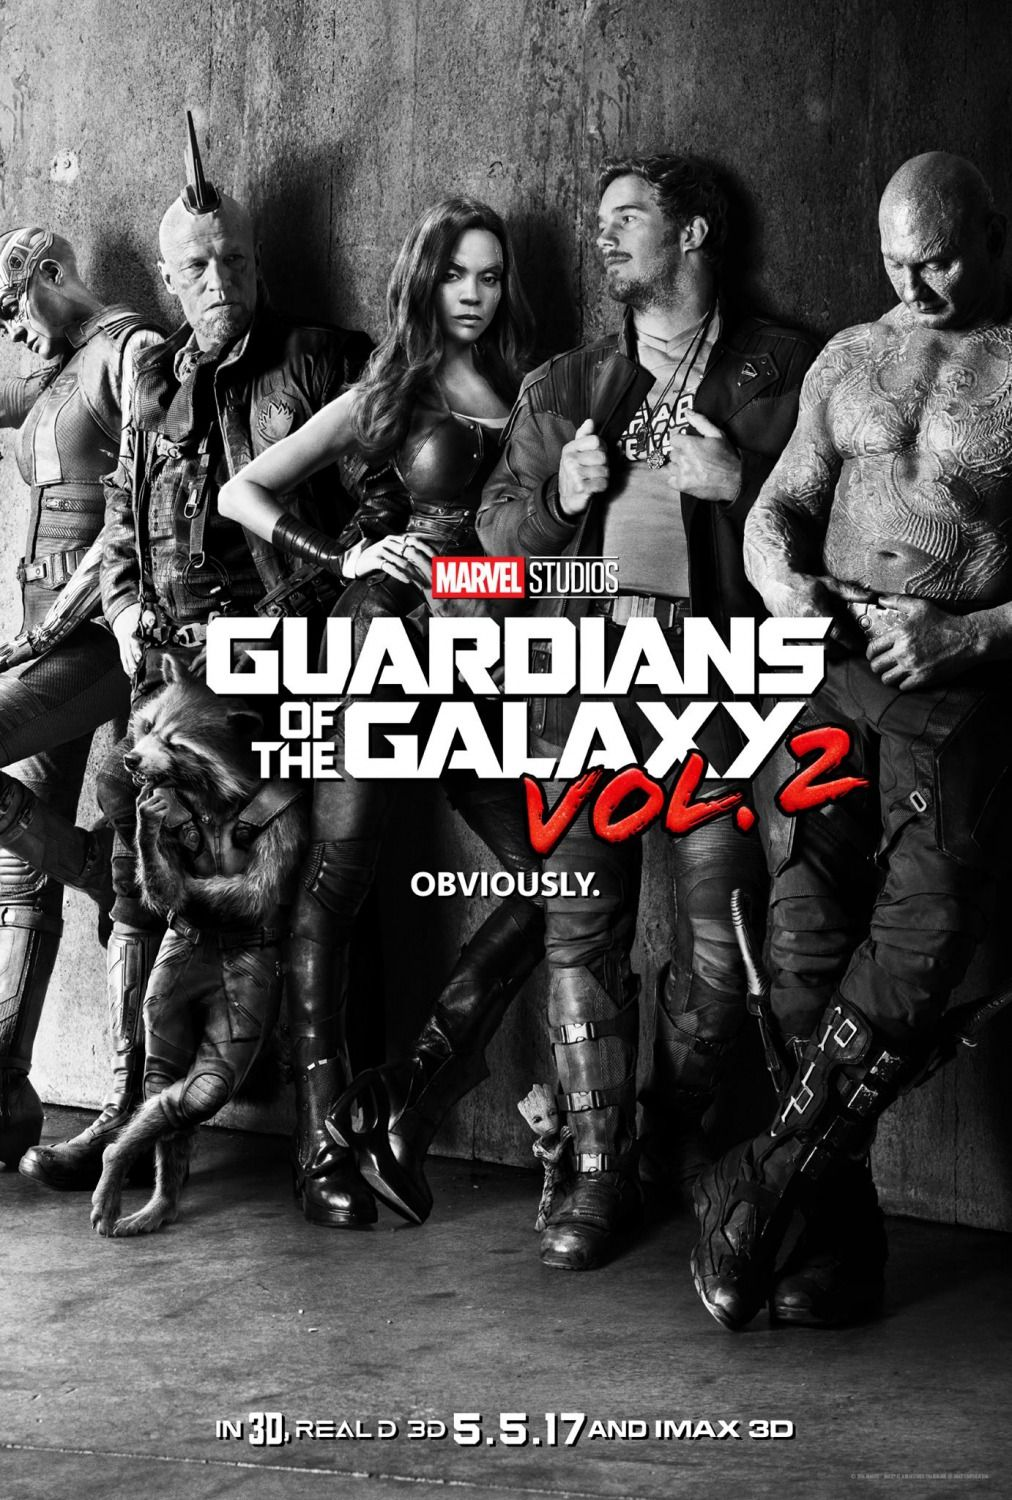 guardians_of_the_galaxy_vol_two_xlg | Film & Fernsehen | Pinterest ...